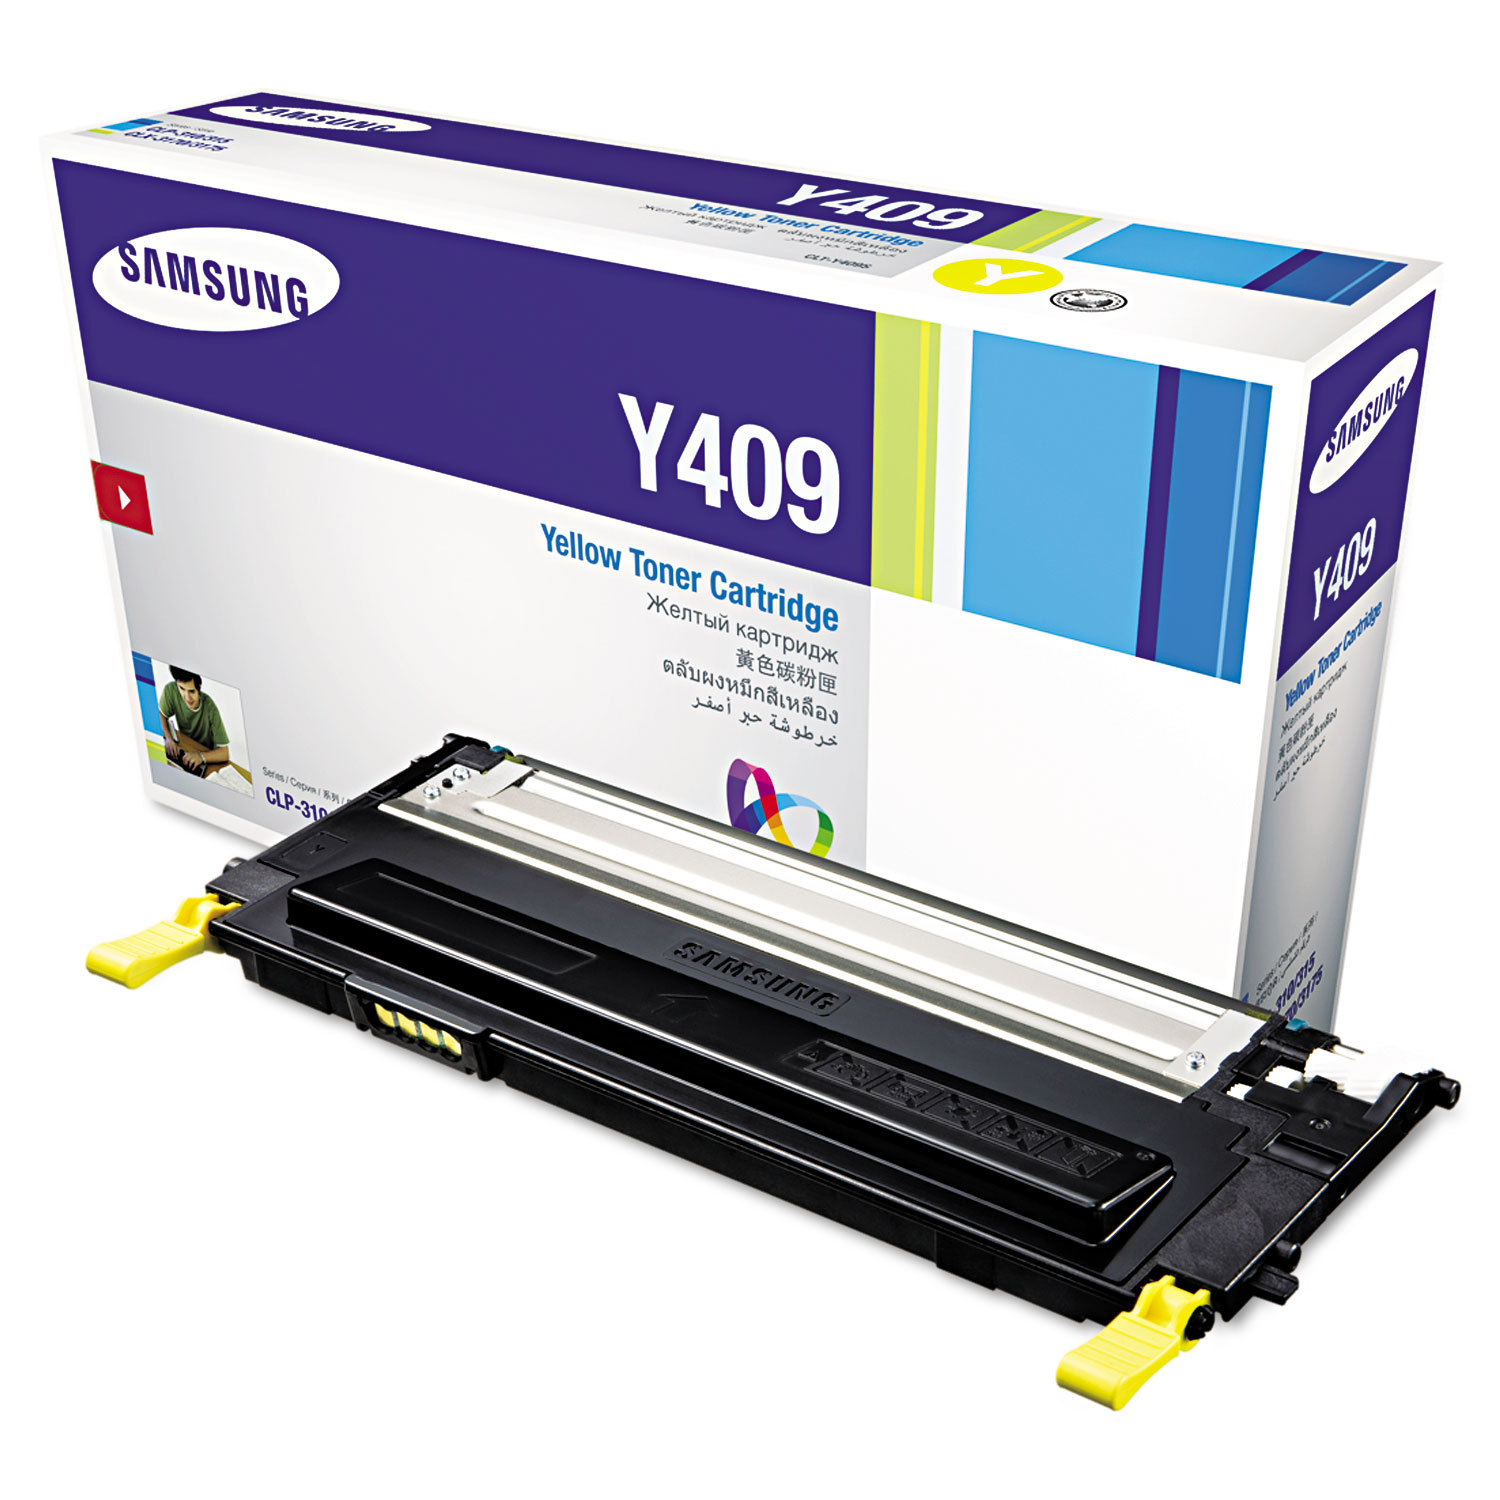 Clty409s Toner By Samsung Sasclty409s Ontimesupplies Com